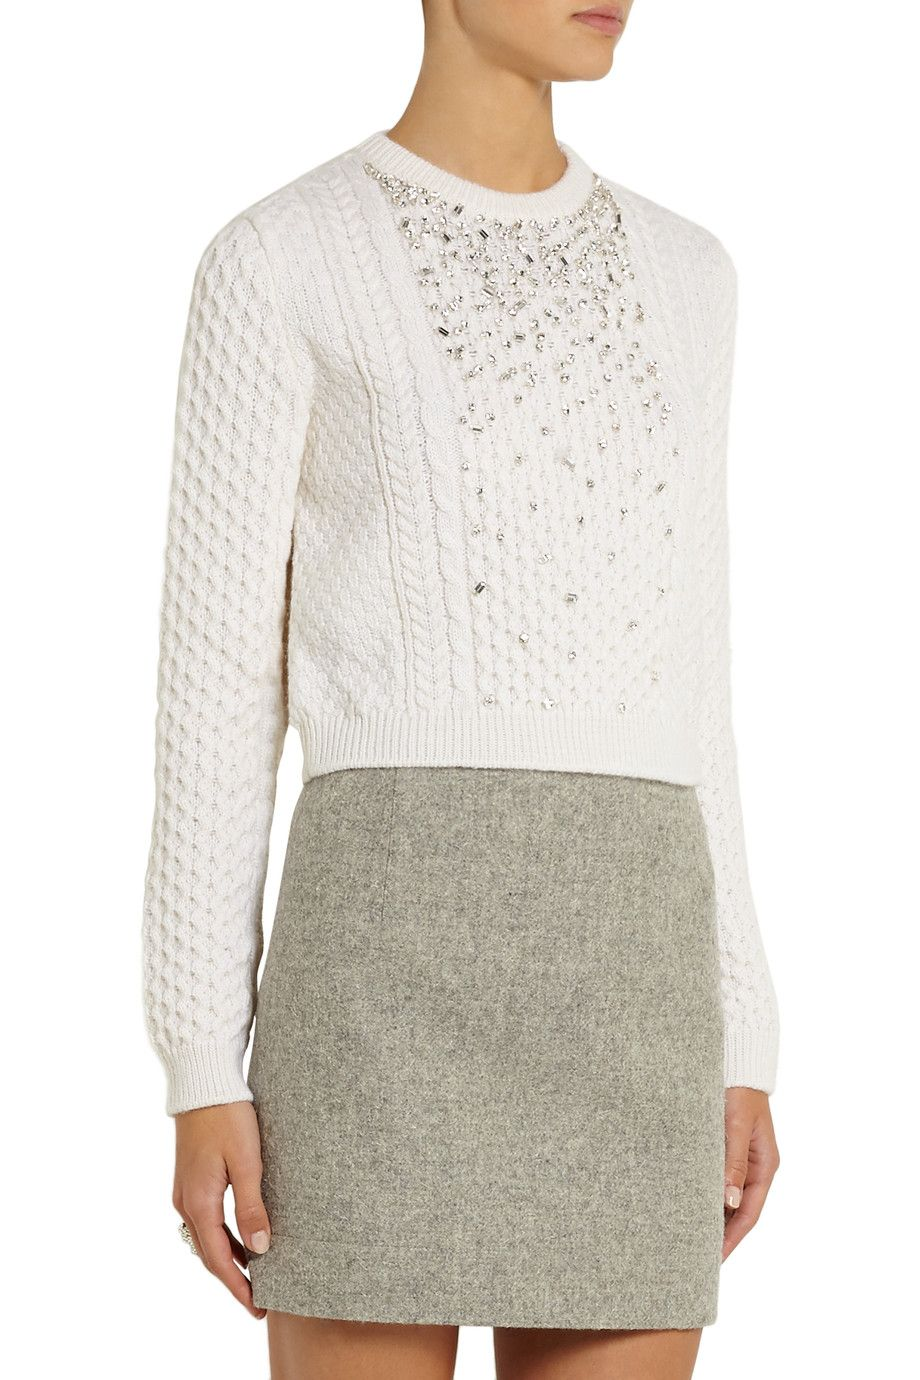 Miu MiuCrystal-embellished cable-knit sweaterfront